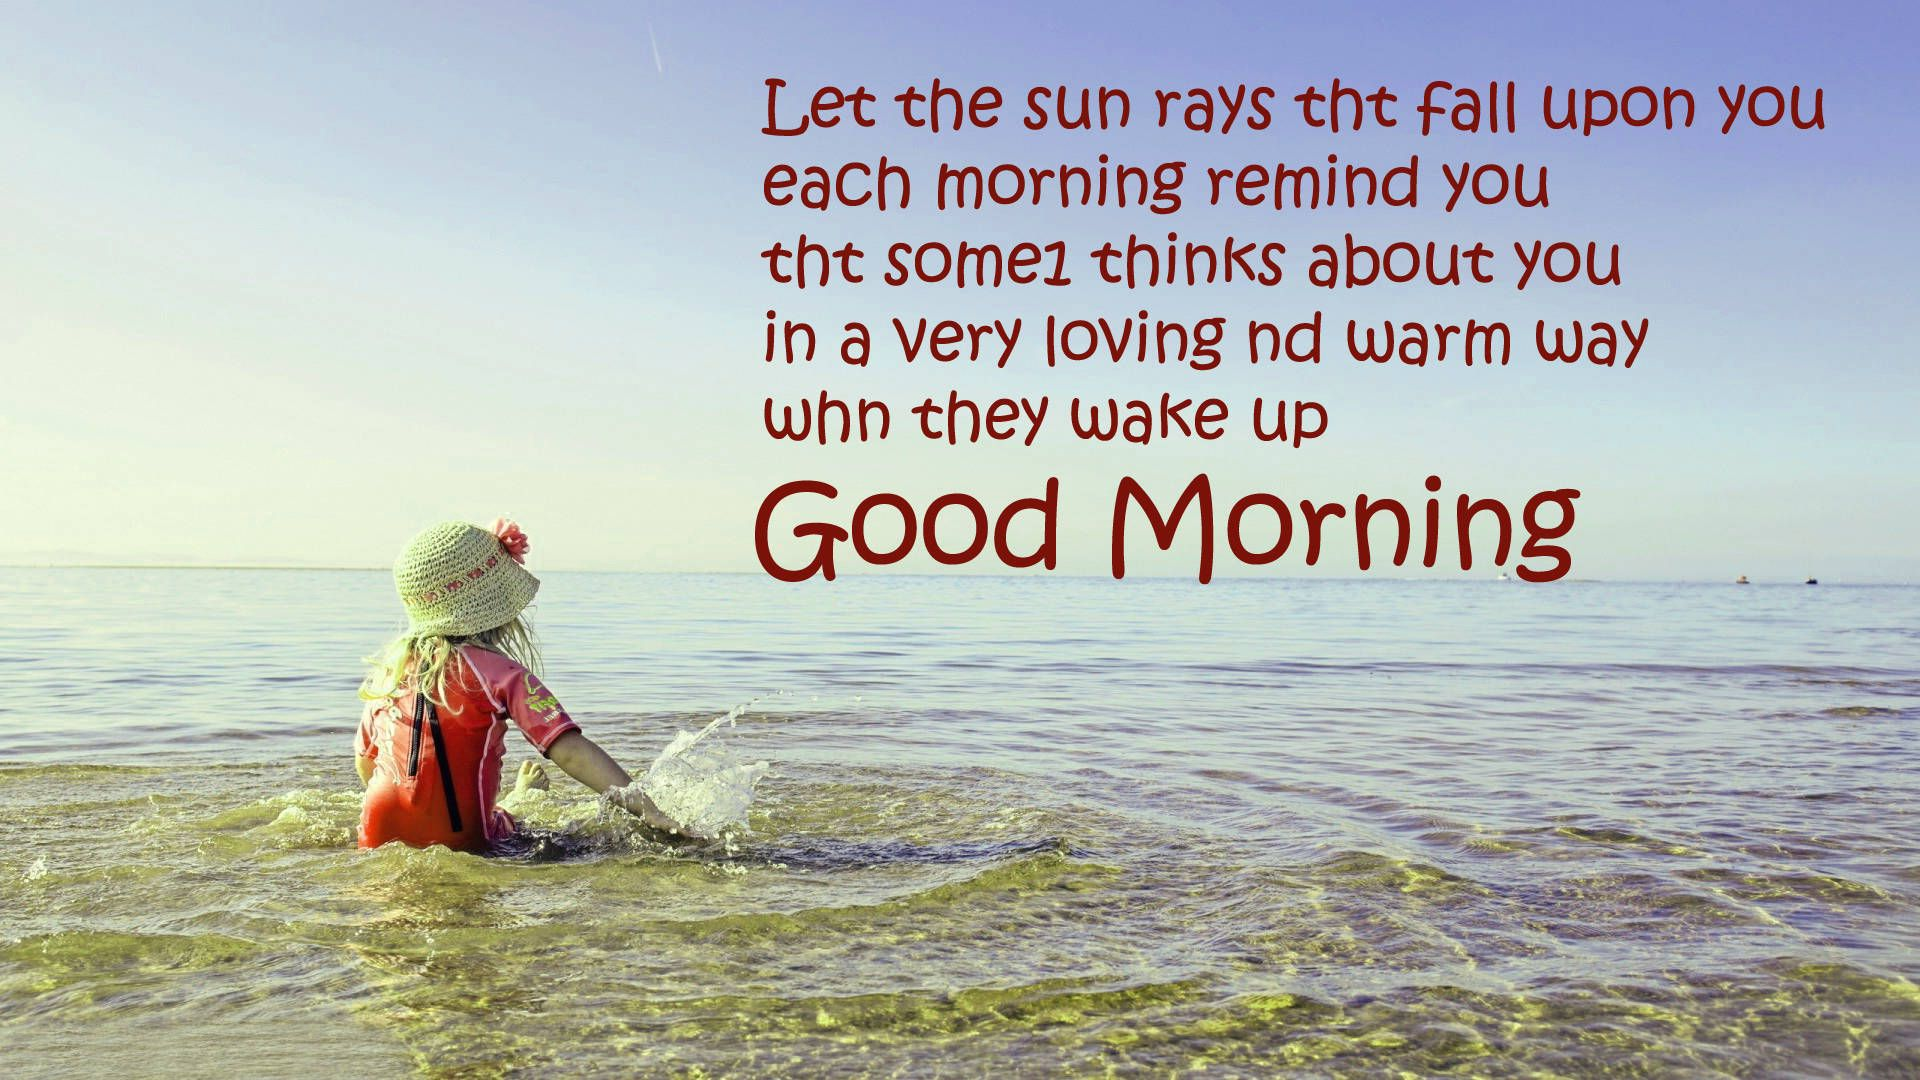 #GoodMorning Everyone!!! Morning Is Not Just The New Day, Its The